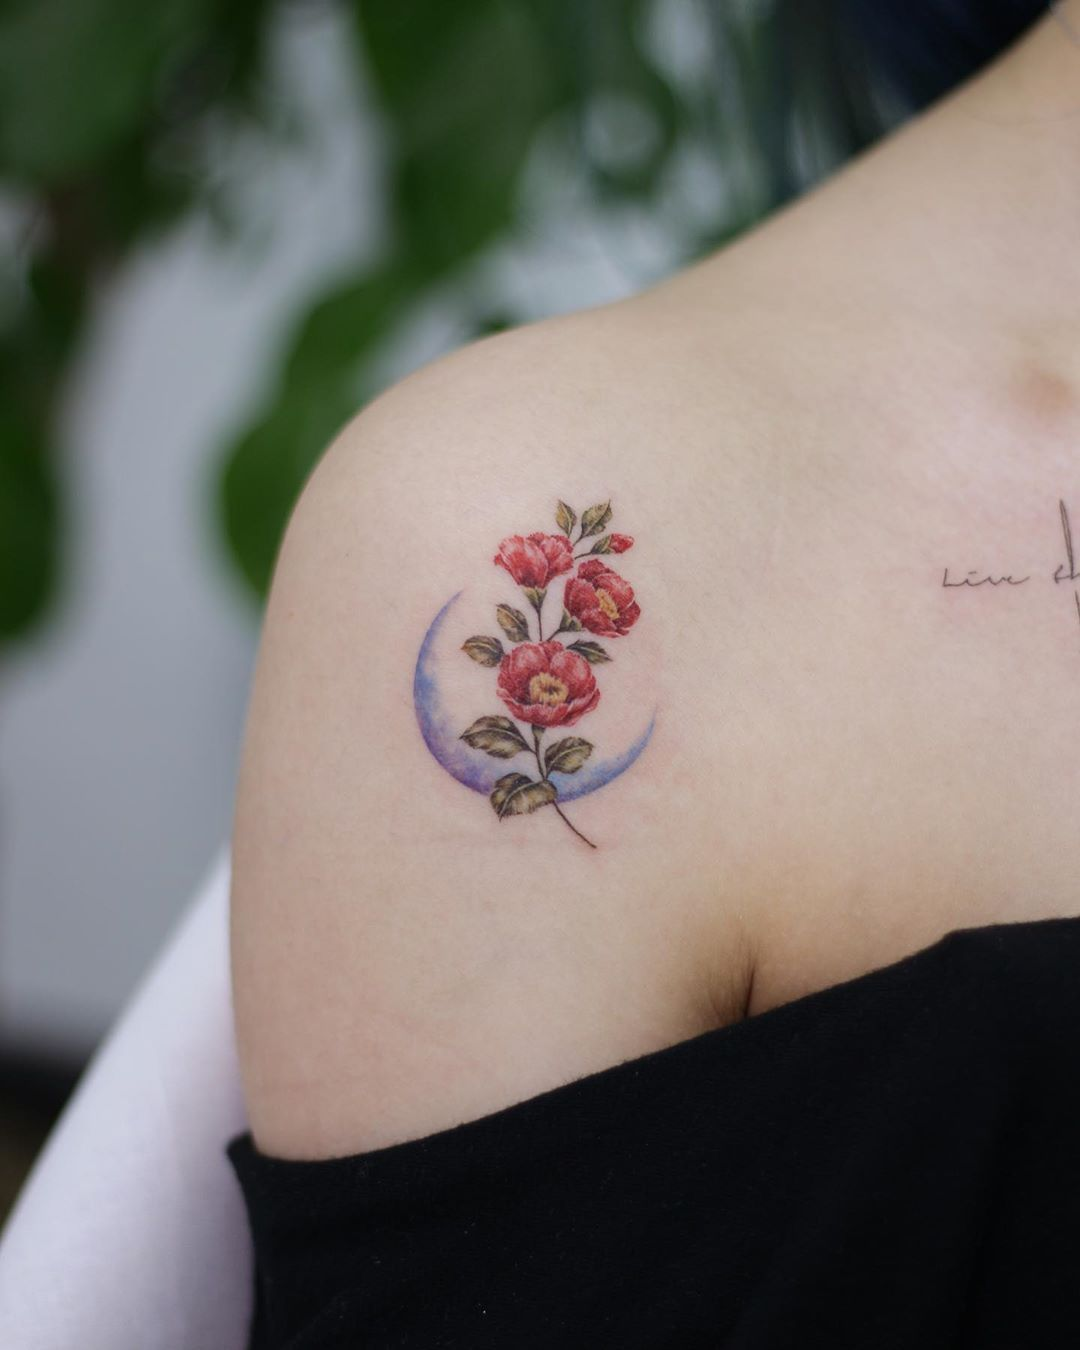 Camellia With Crescent And Cross Lettering Flowertattoo Botanicaltattoo Watercolortattoo Koreatattoo Camellia Small Tattoos Botanical Tattoo Tiny Tattoos